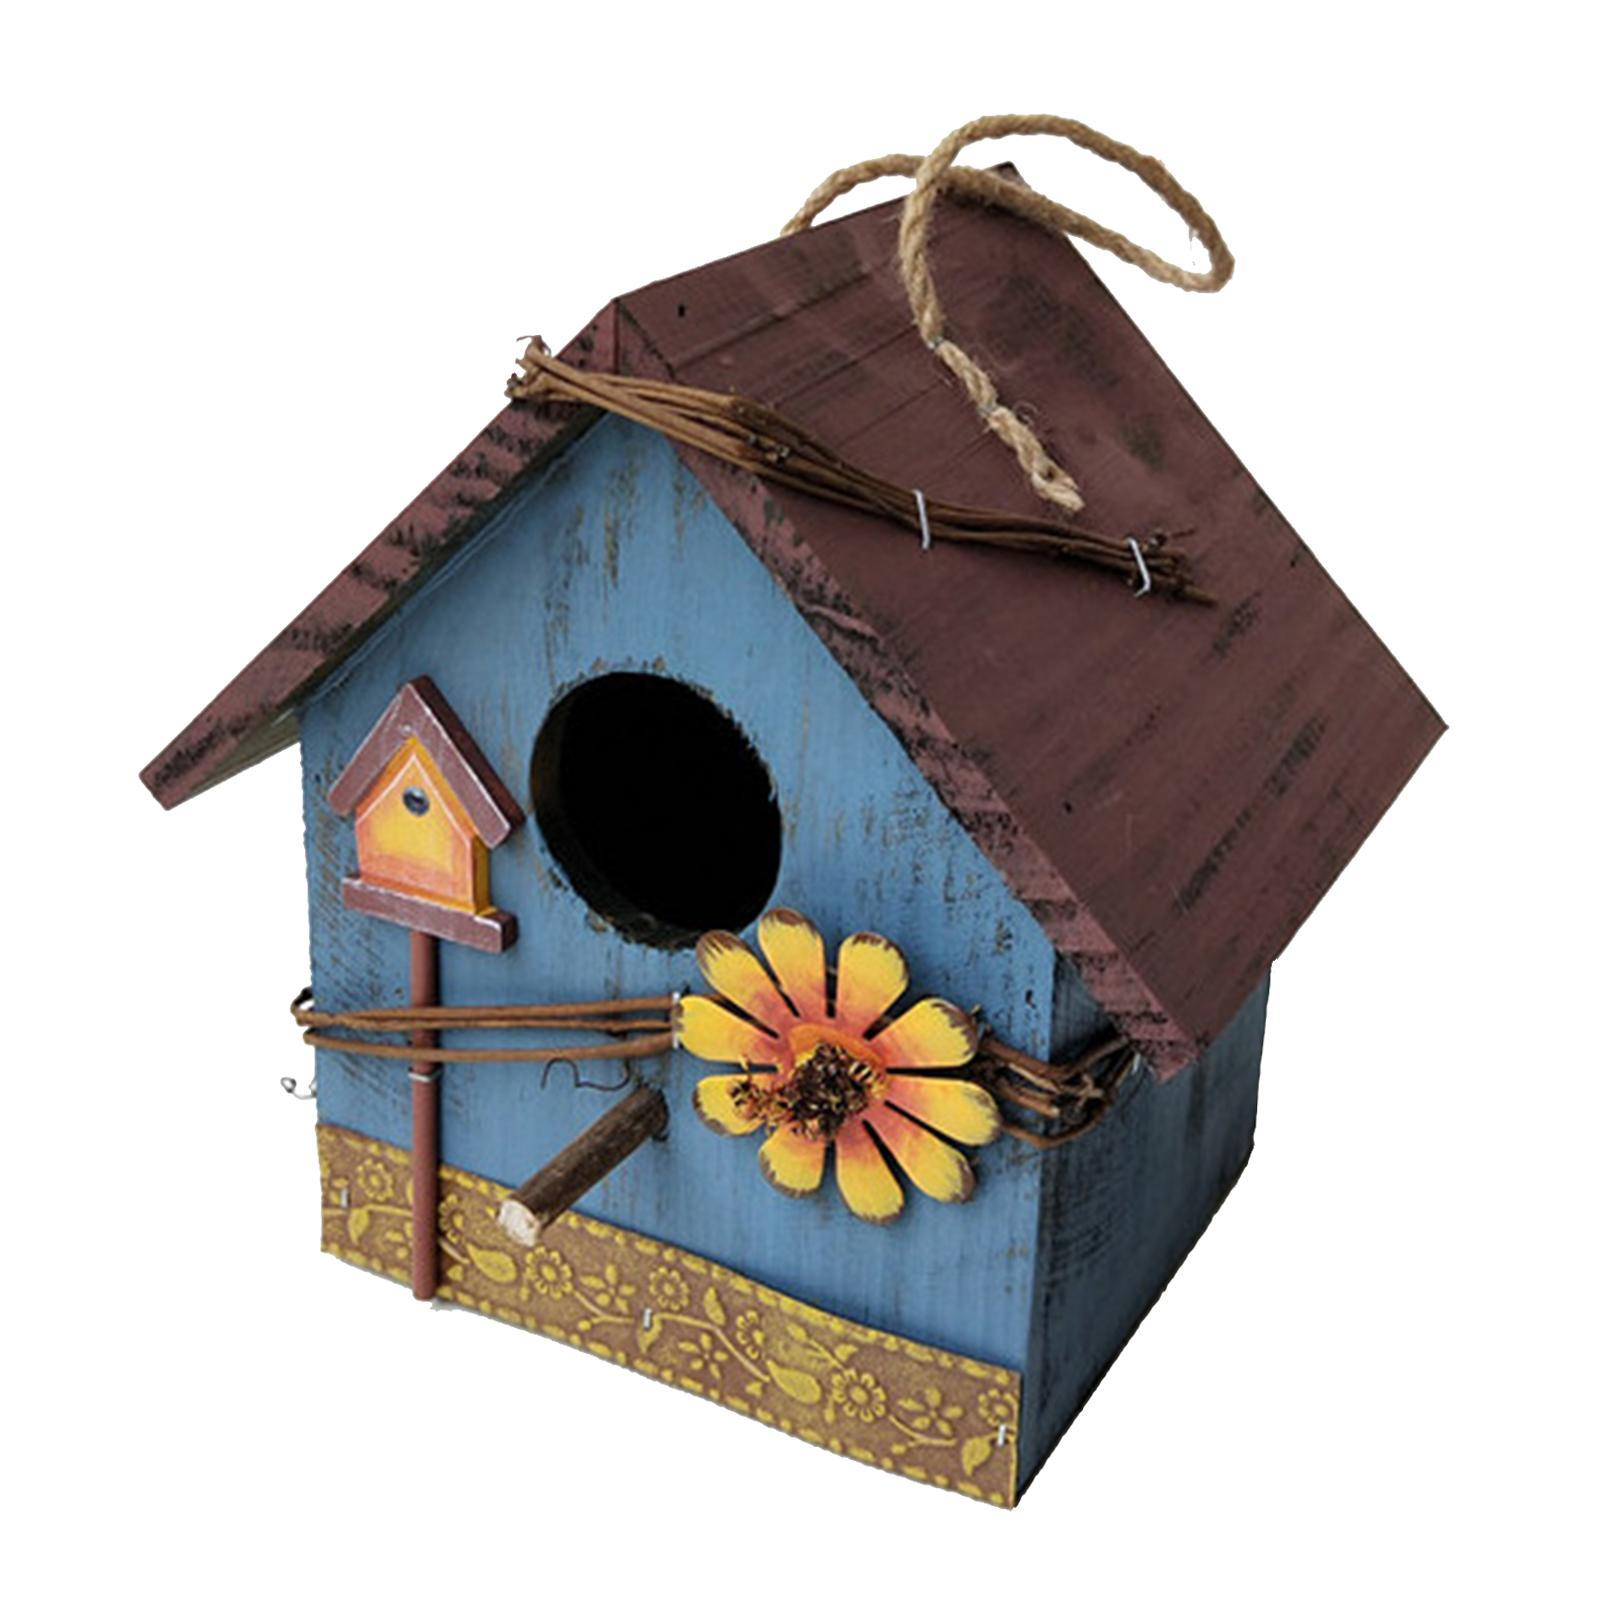 thumbnail 20 - Antique Hand Painted Wood Birdhouse Decorative Outdoor Bird House Garden